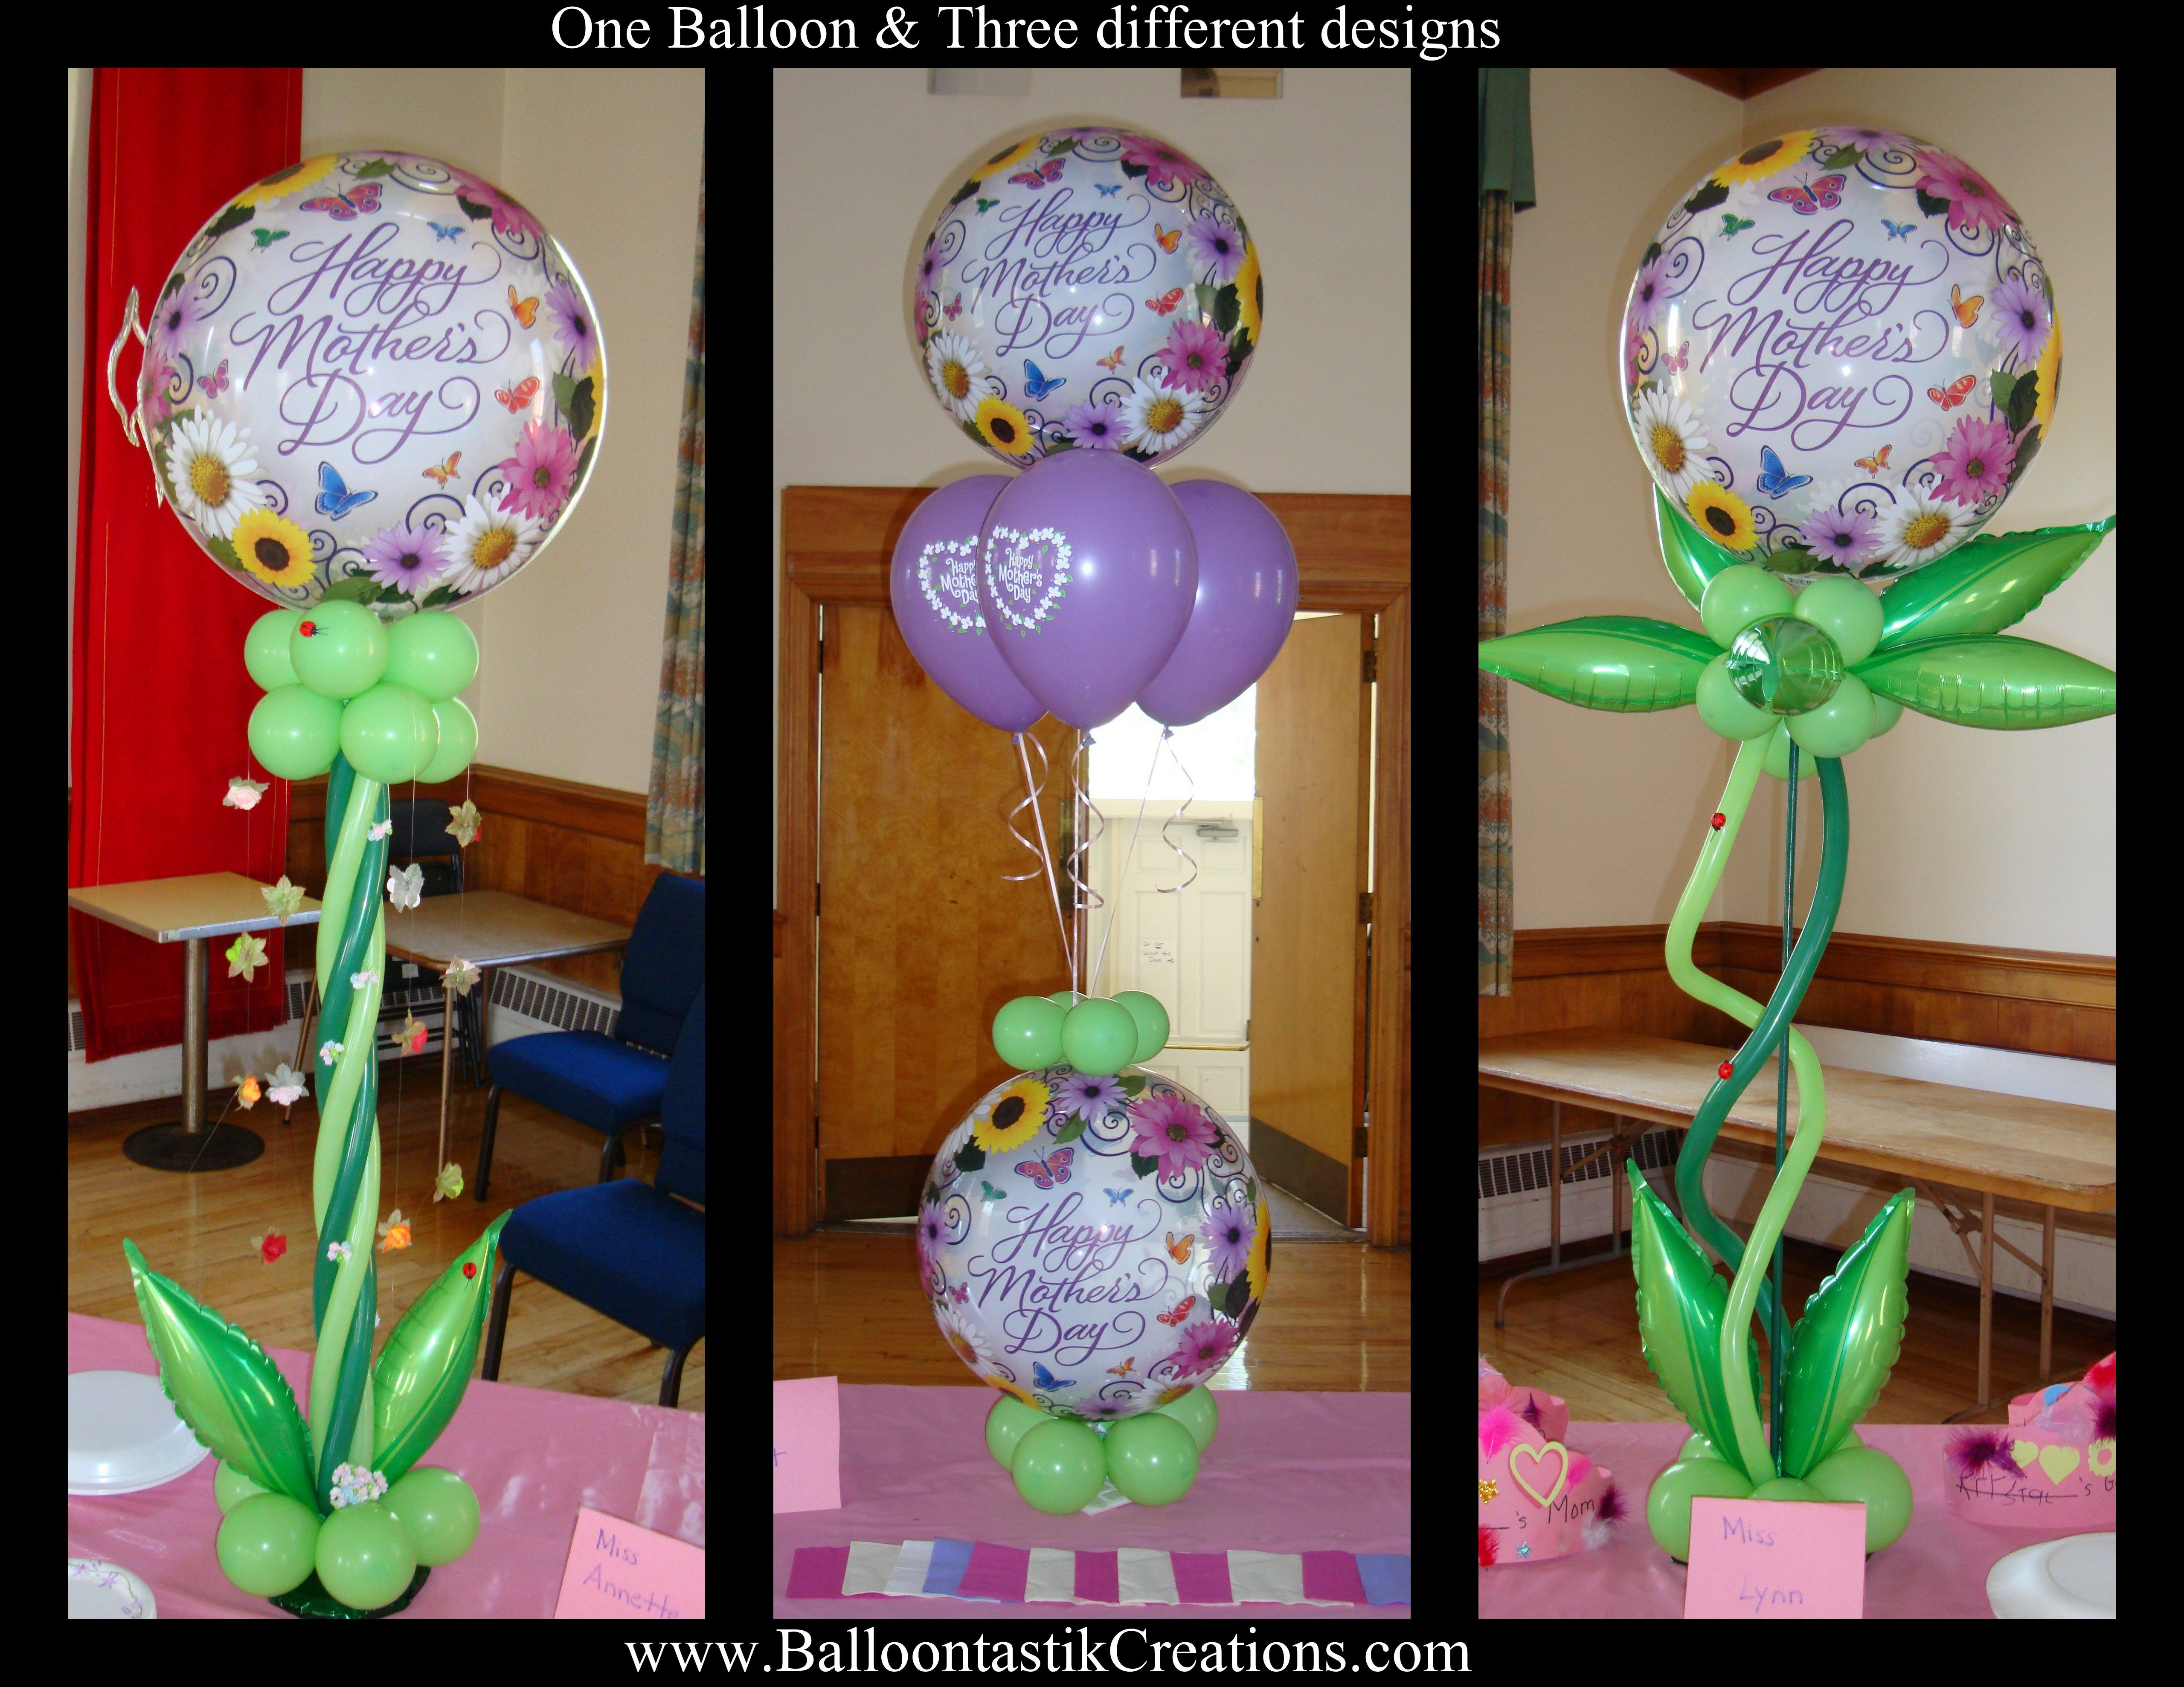 One unique Balloon in a three diffrenet designs...www.BalloontastikCreations.com